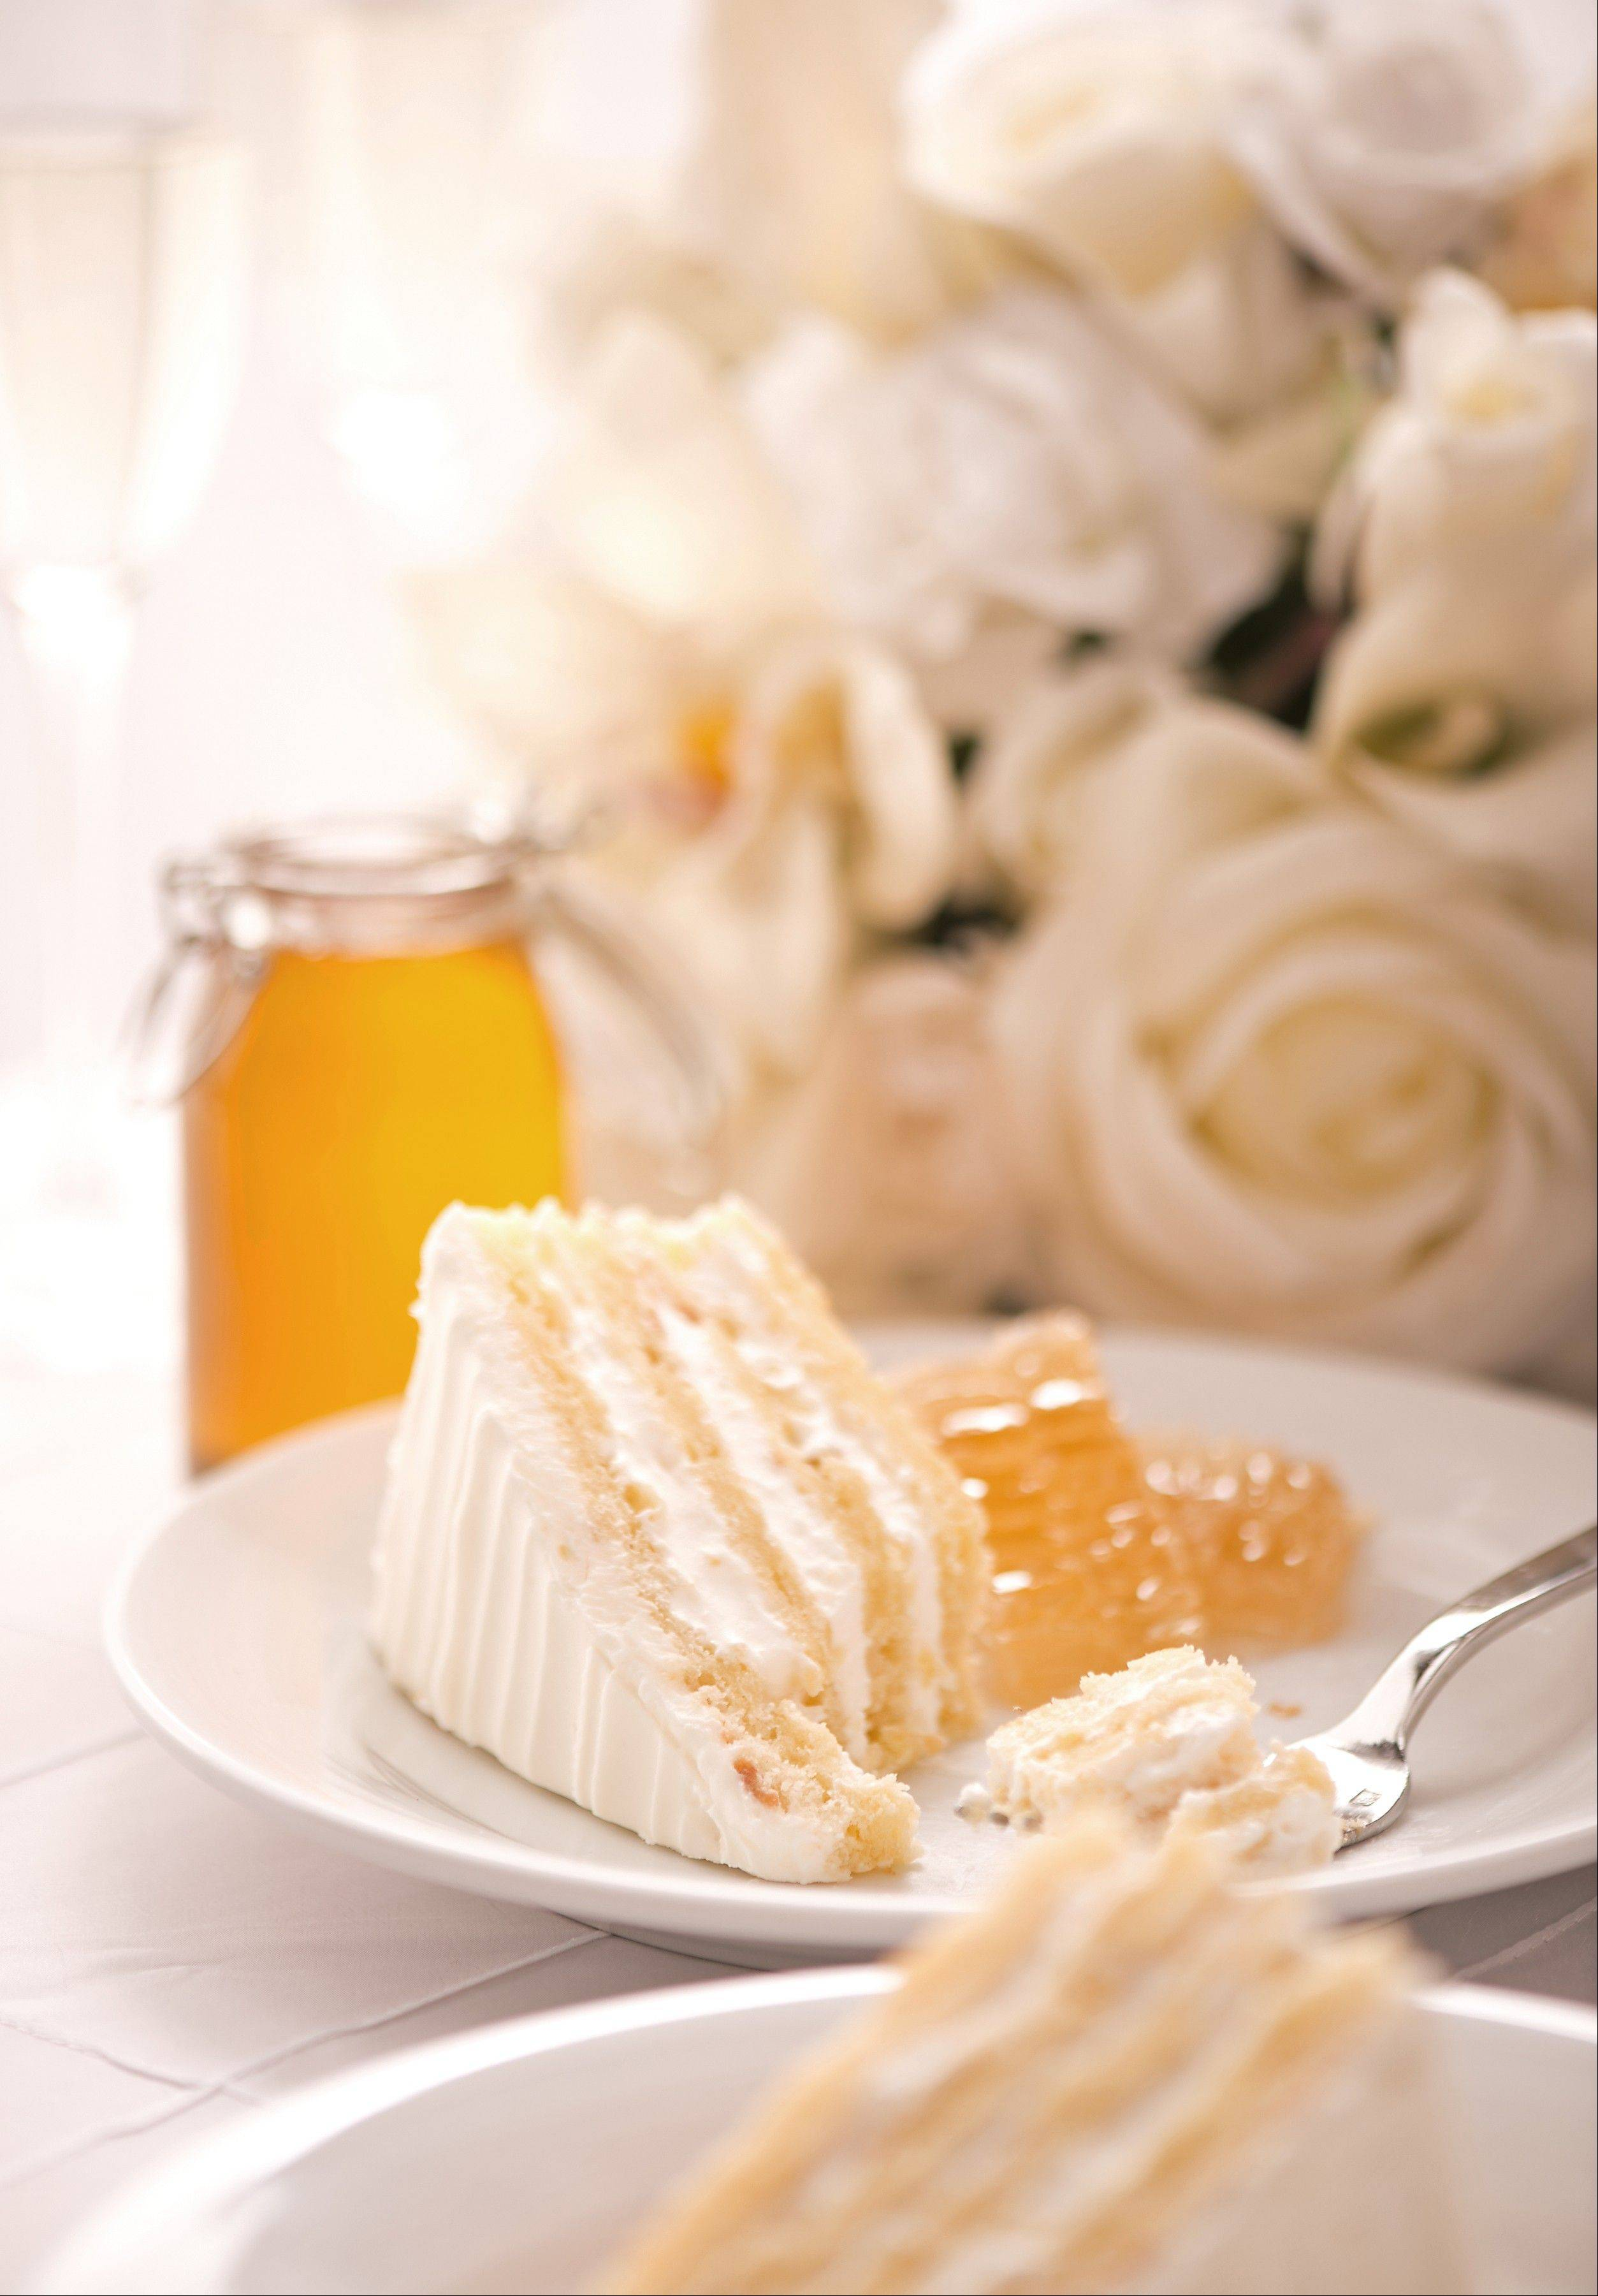 Honey harvested by hives located on the roof of the Chicago Marriott Naperviller flavors a wedding cake made by hotel pastry chef Erica Tomei.